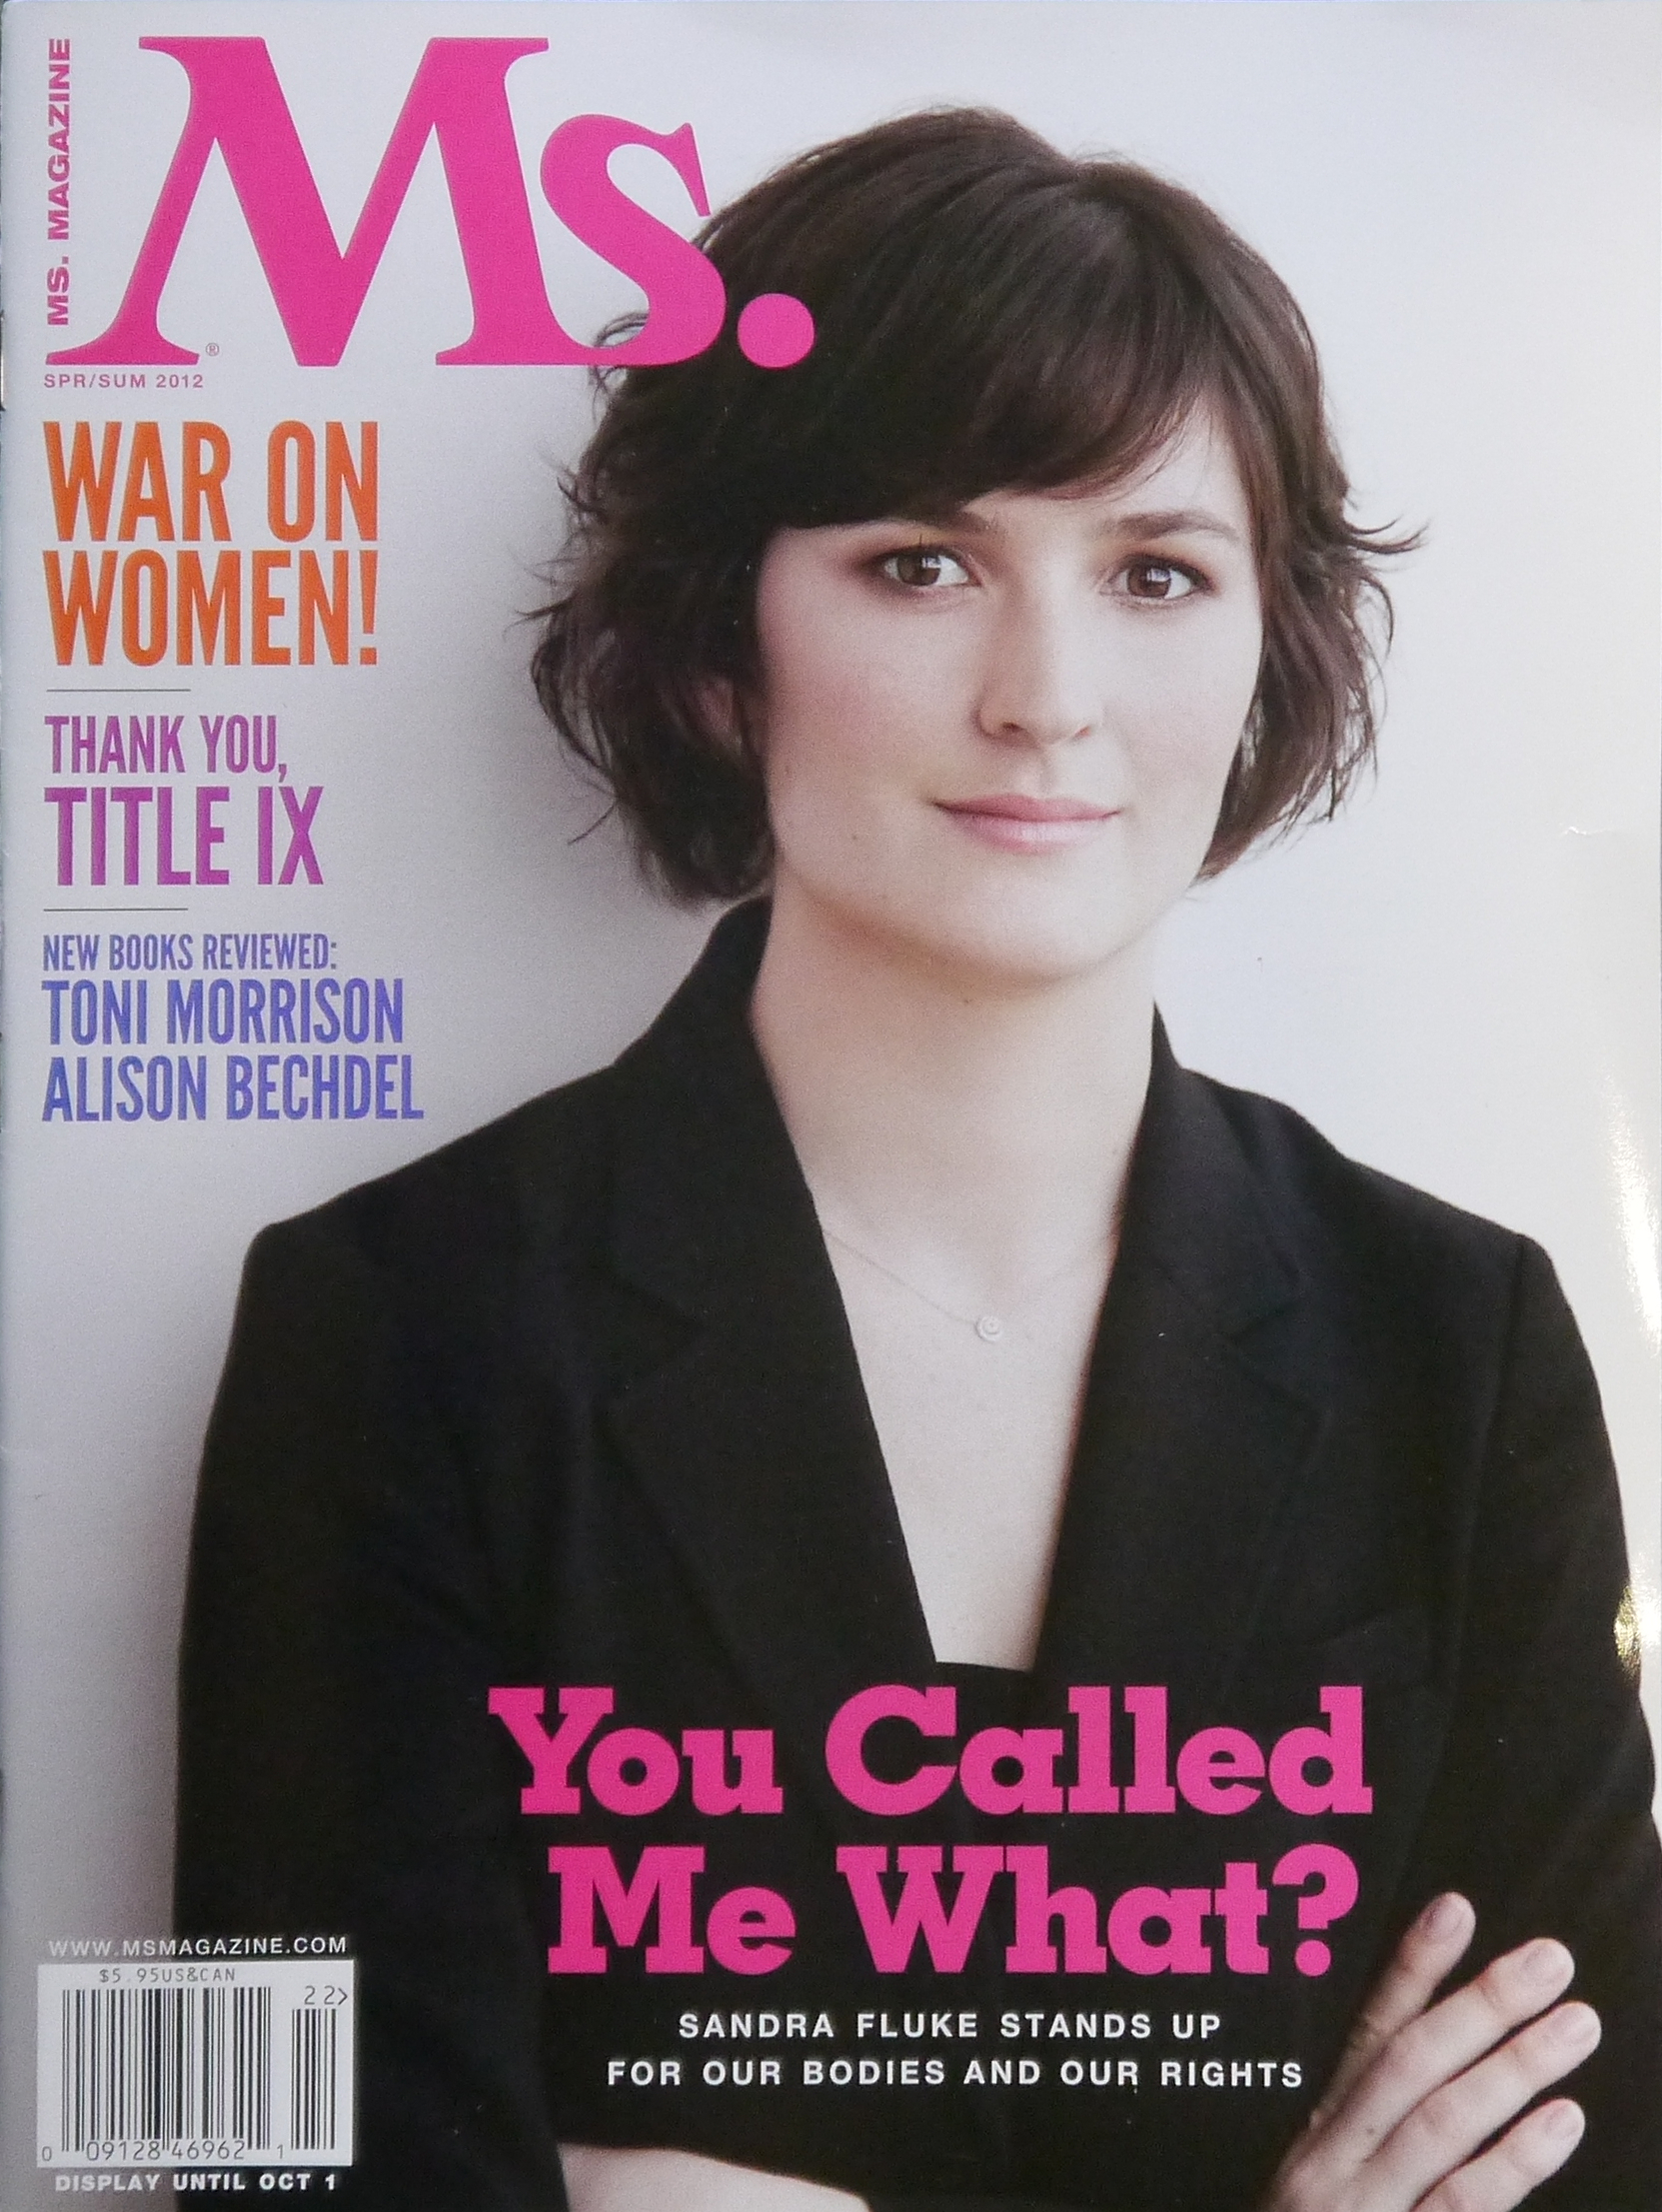 Magazine Cover - Title in pink lettering over a photograph of a young woman with her arms crossed.